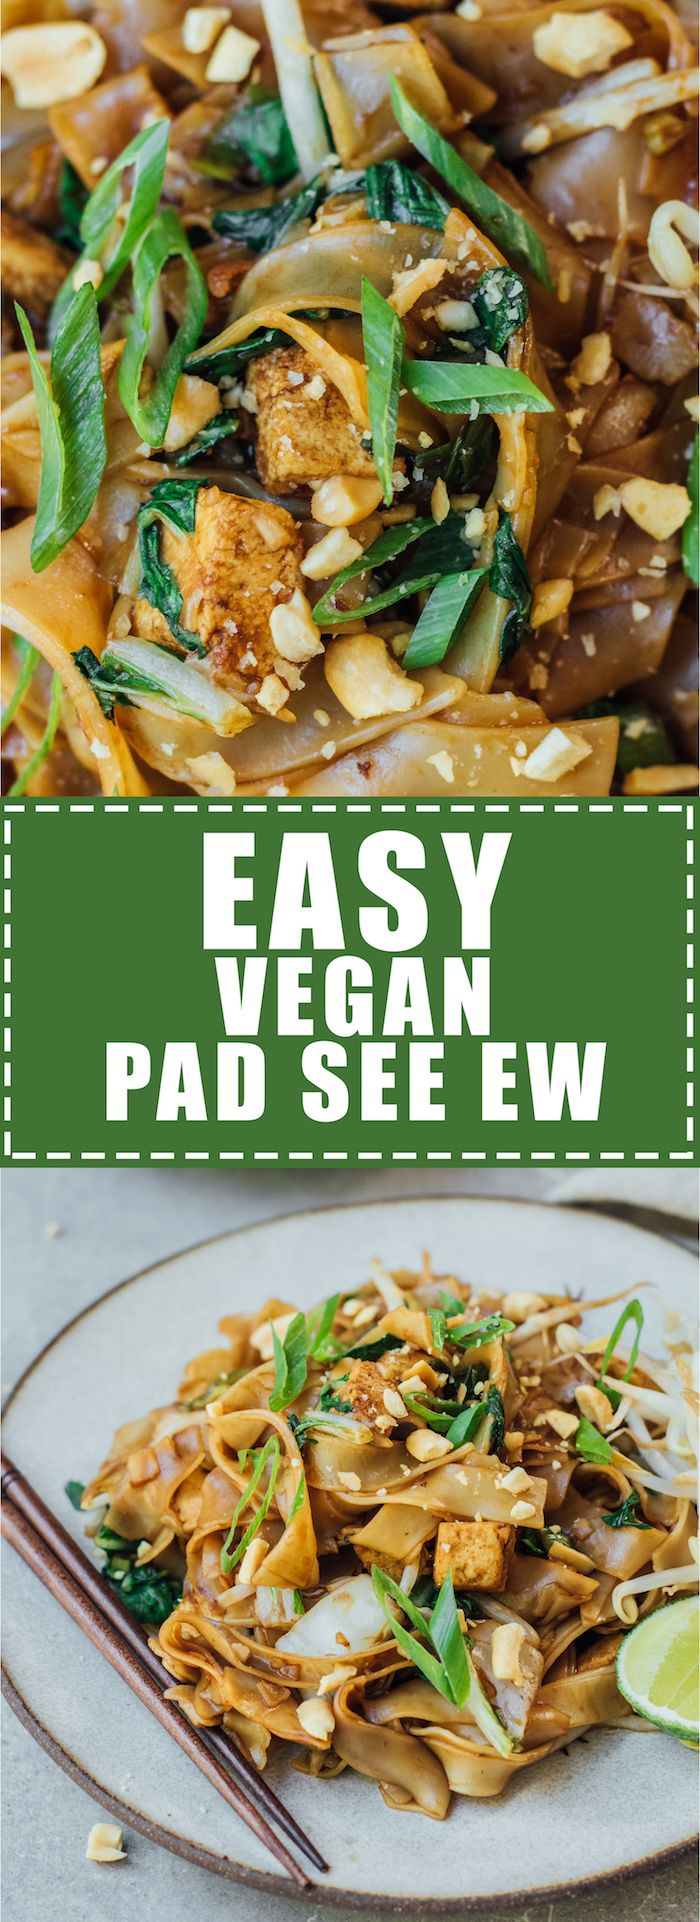 This easy pad see ew is one of my favourite Thai dishes! Gluten-free, vegan, and only takes 15 minutes to make!